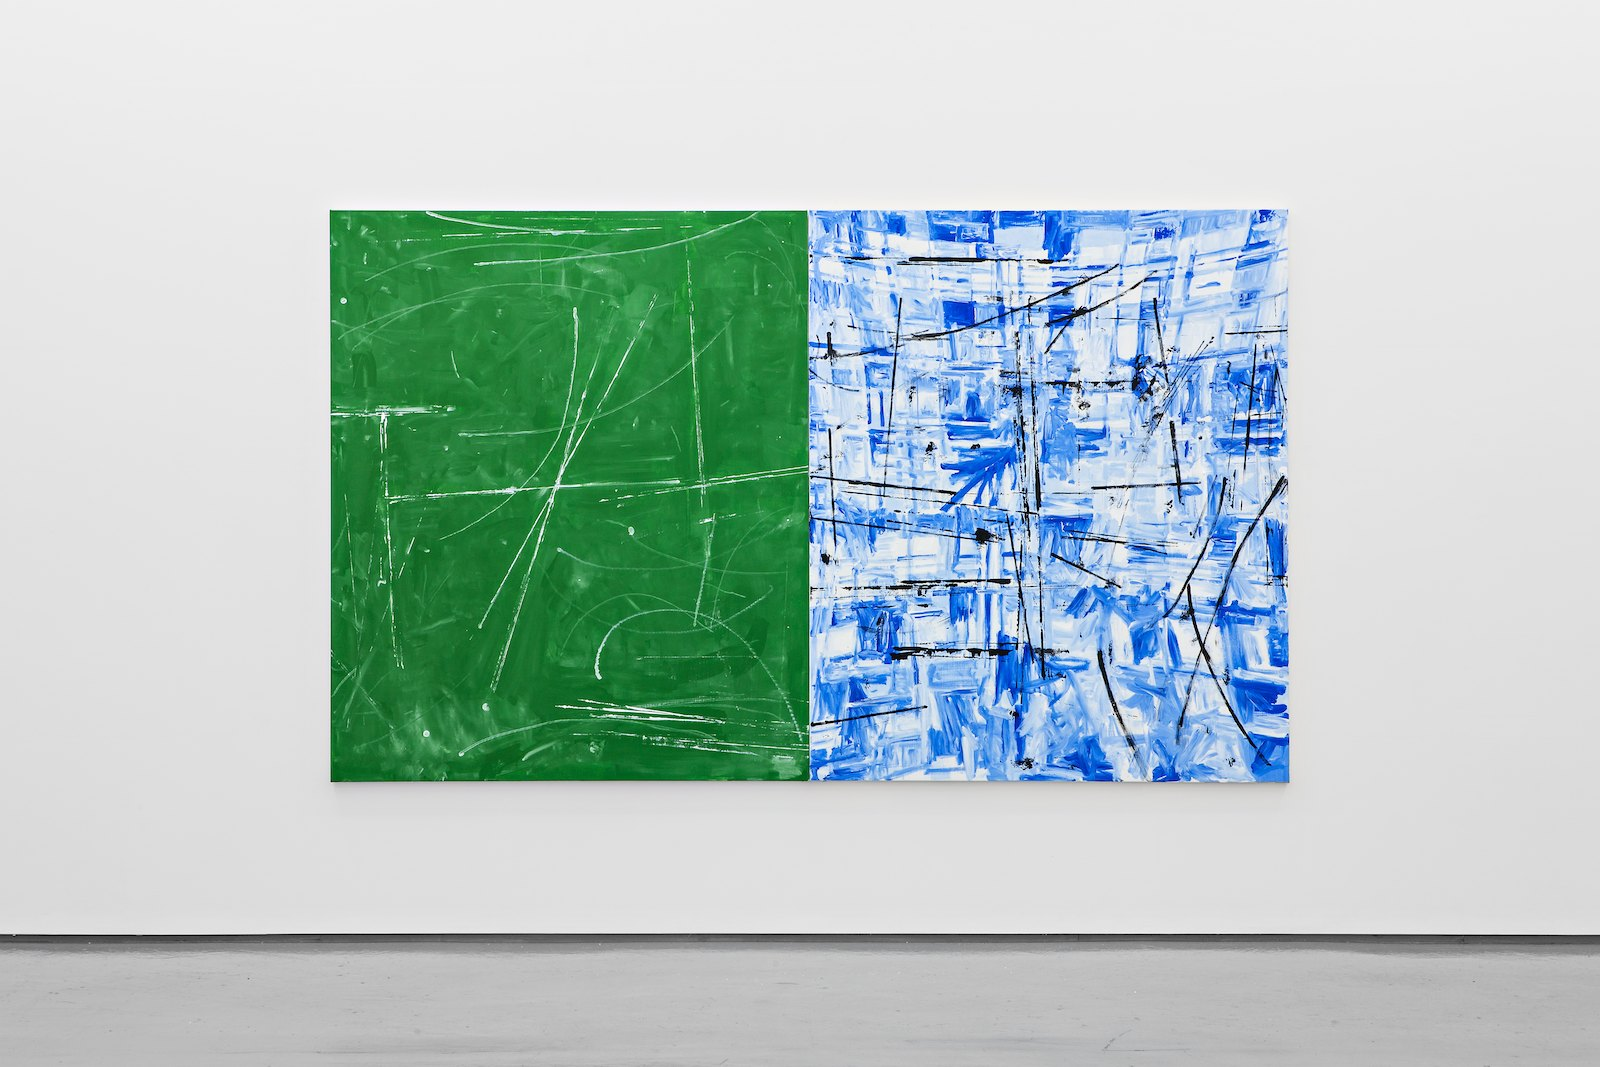 Untitled, 2012, acrylic on canvas, 180 x 300 cm (2 panels)